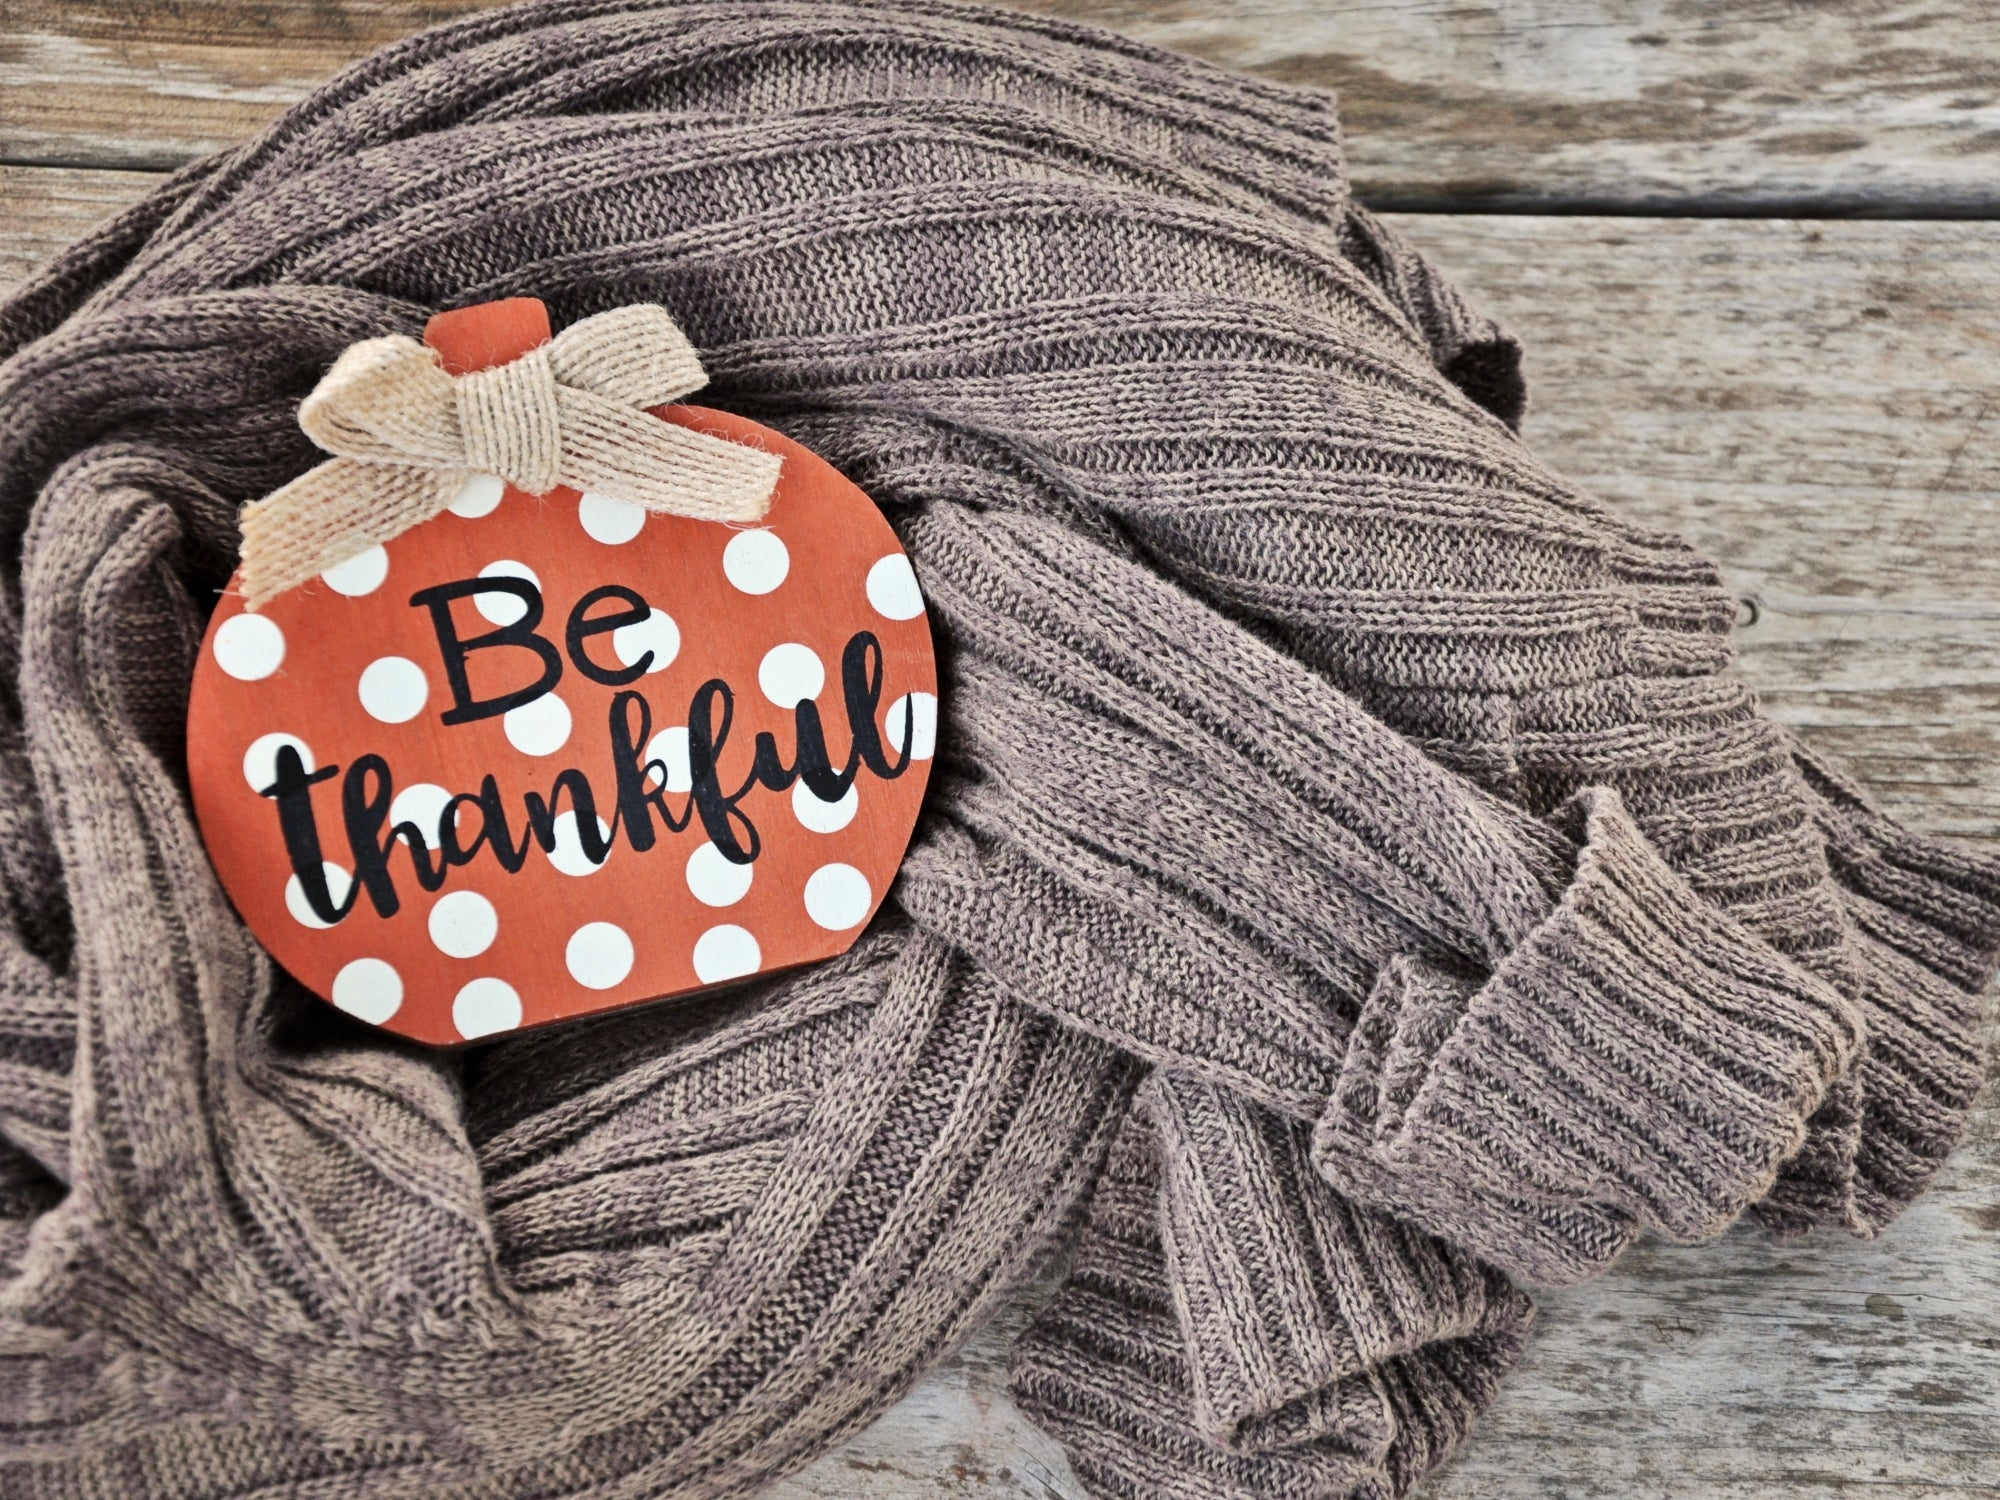 What Are Practical Ways to Express Our Gratitude?